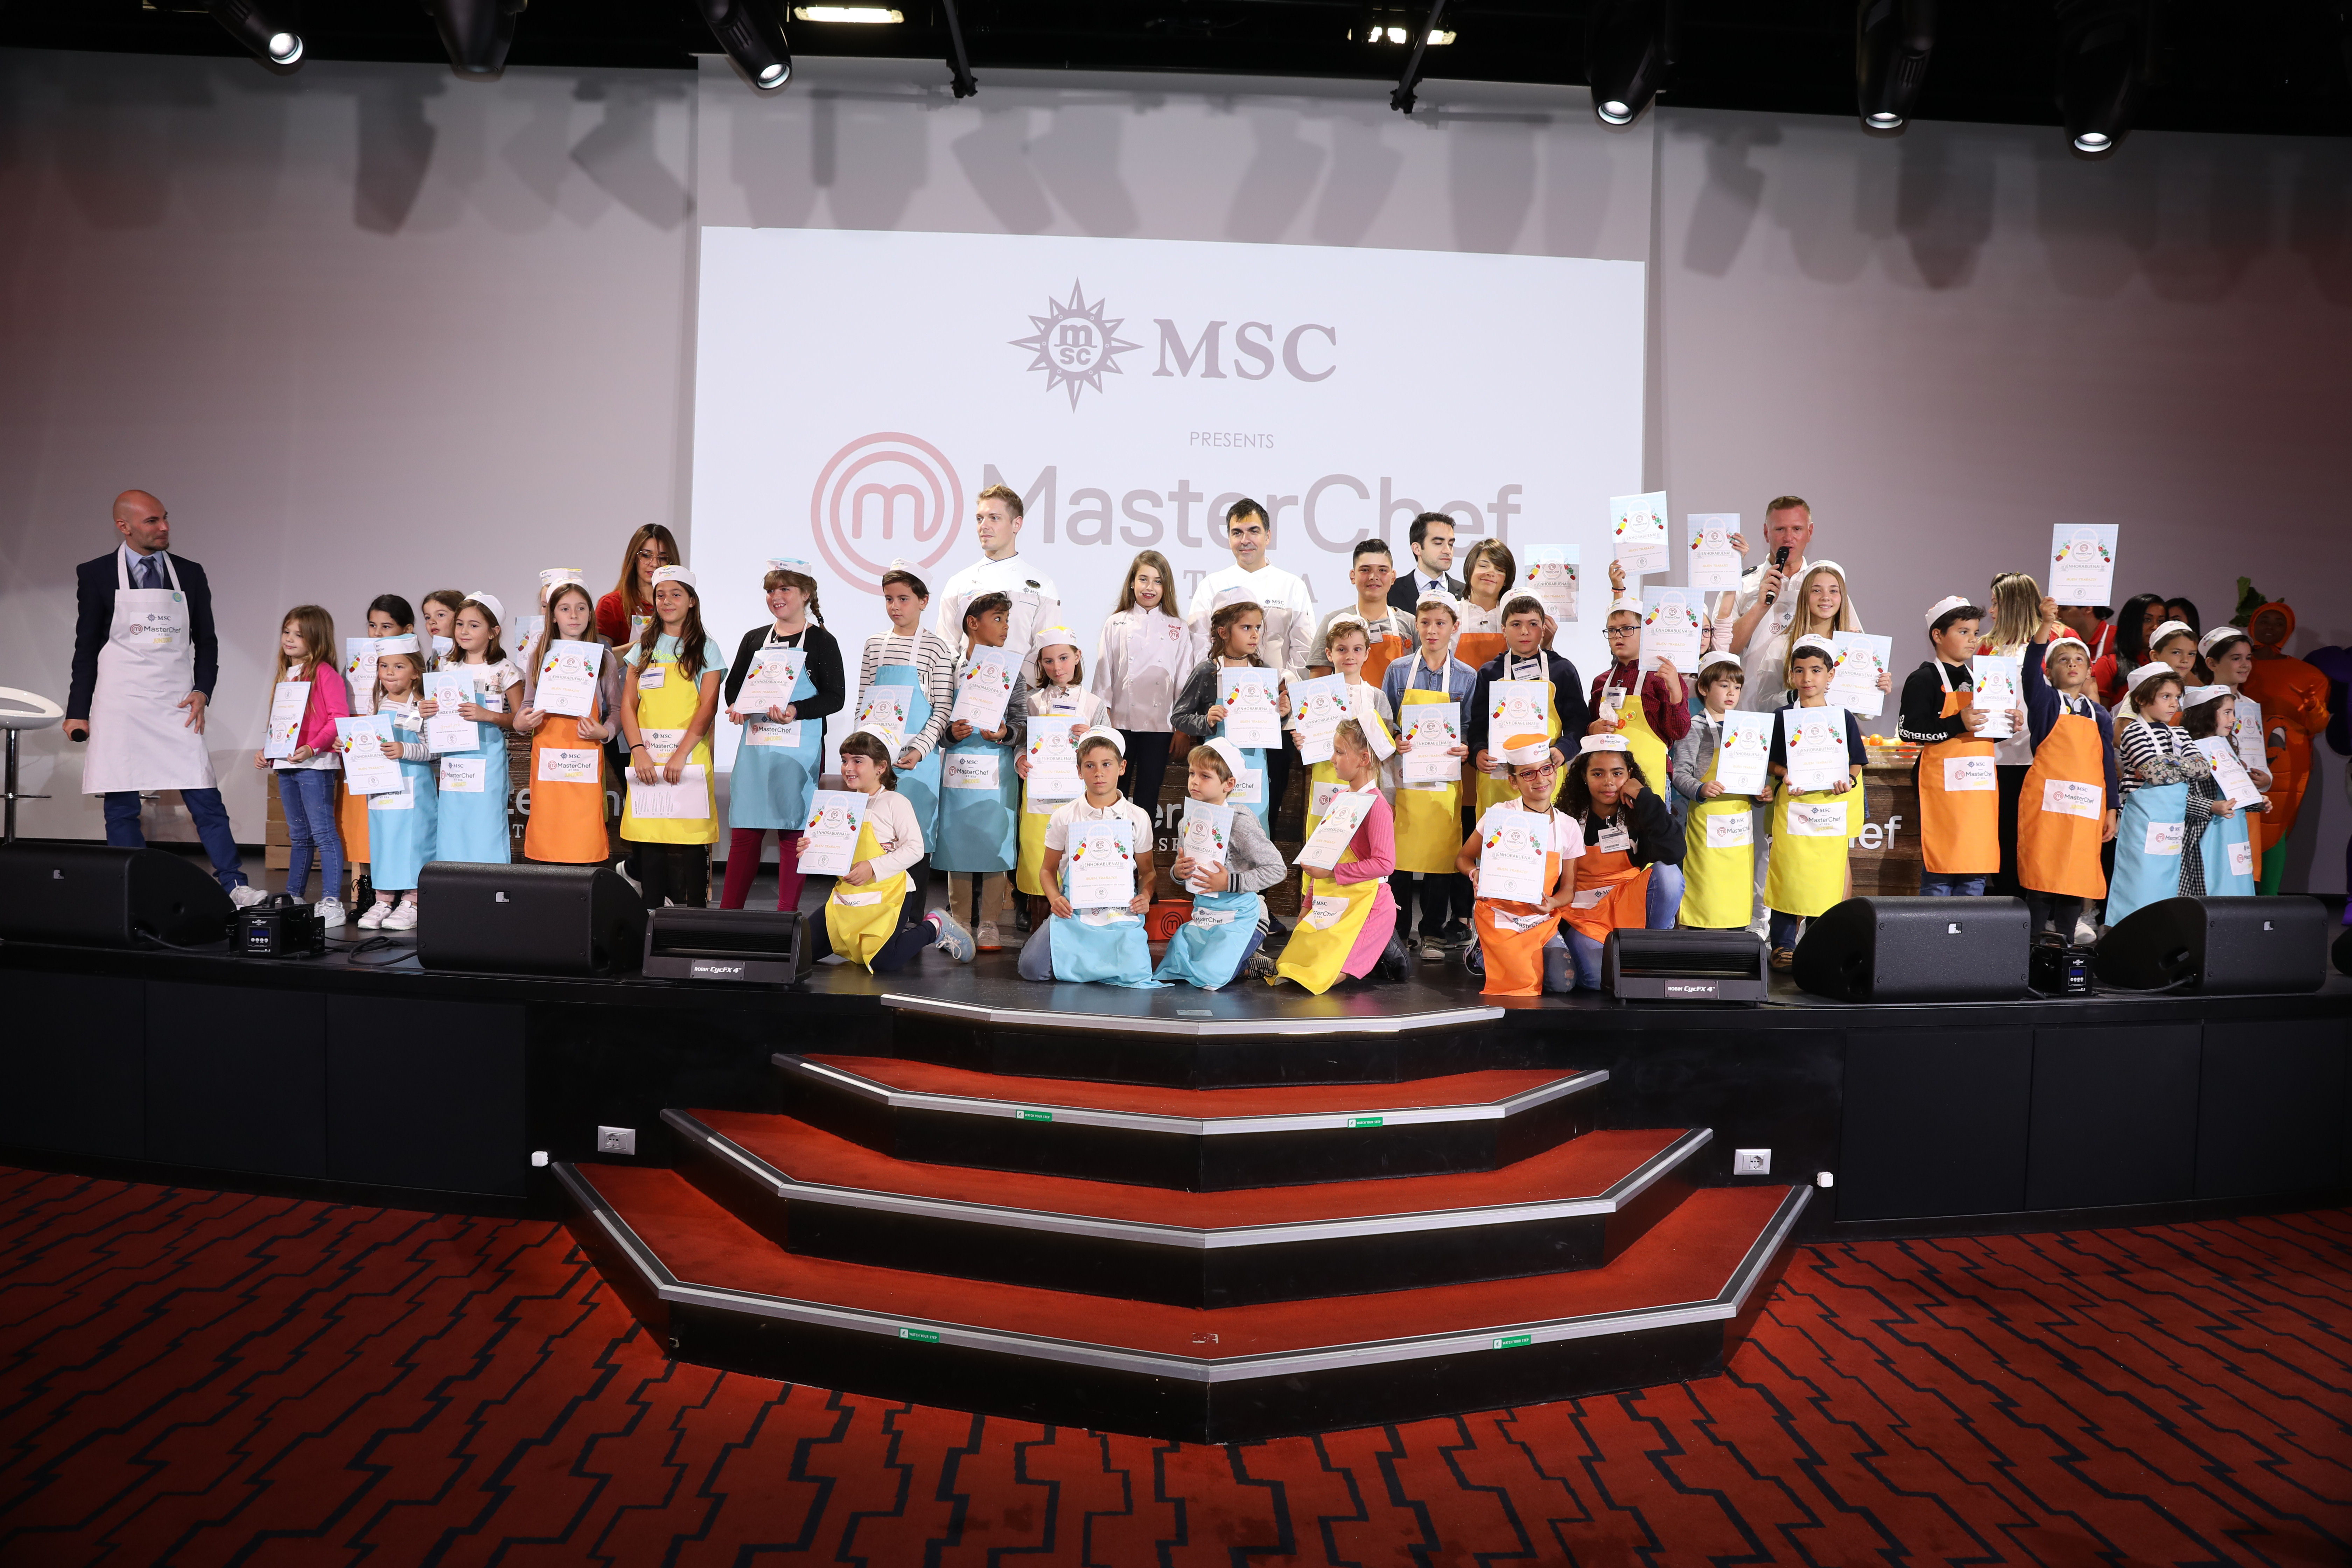 MasterChef Juniors at Sea with MSC Cruceros